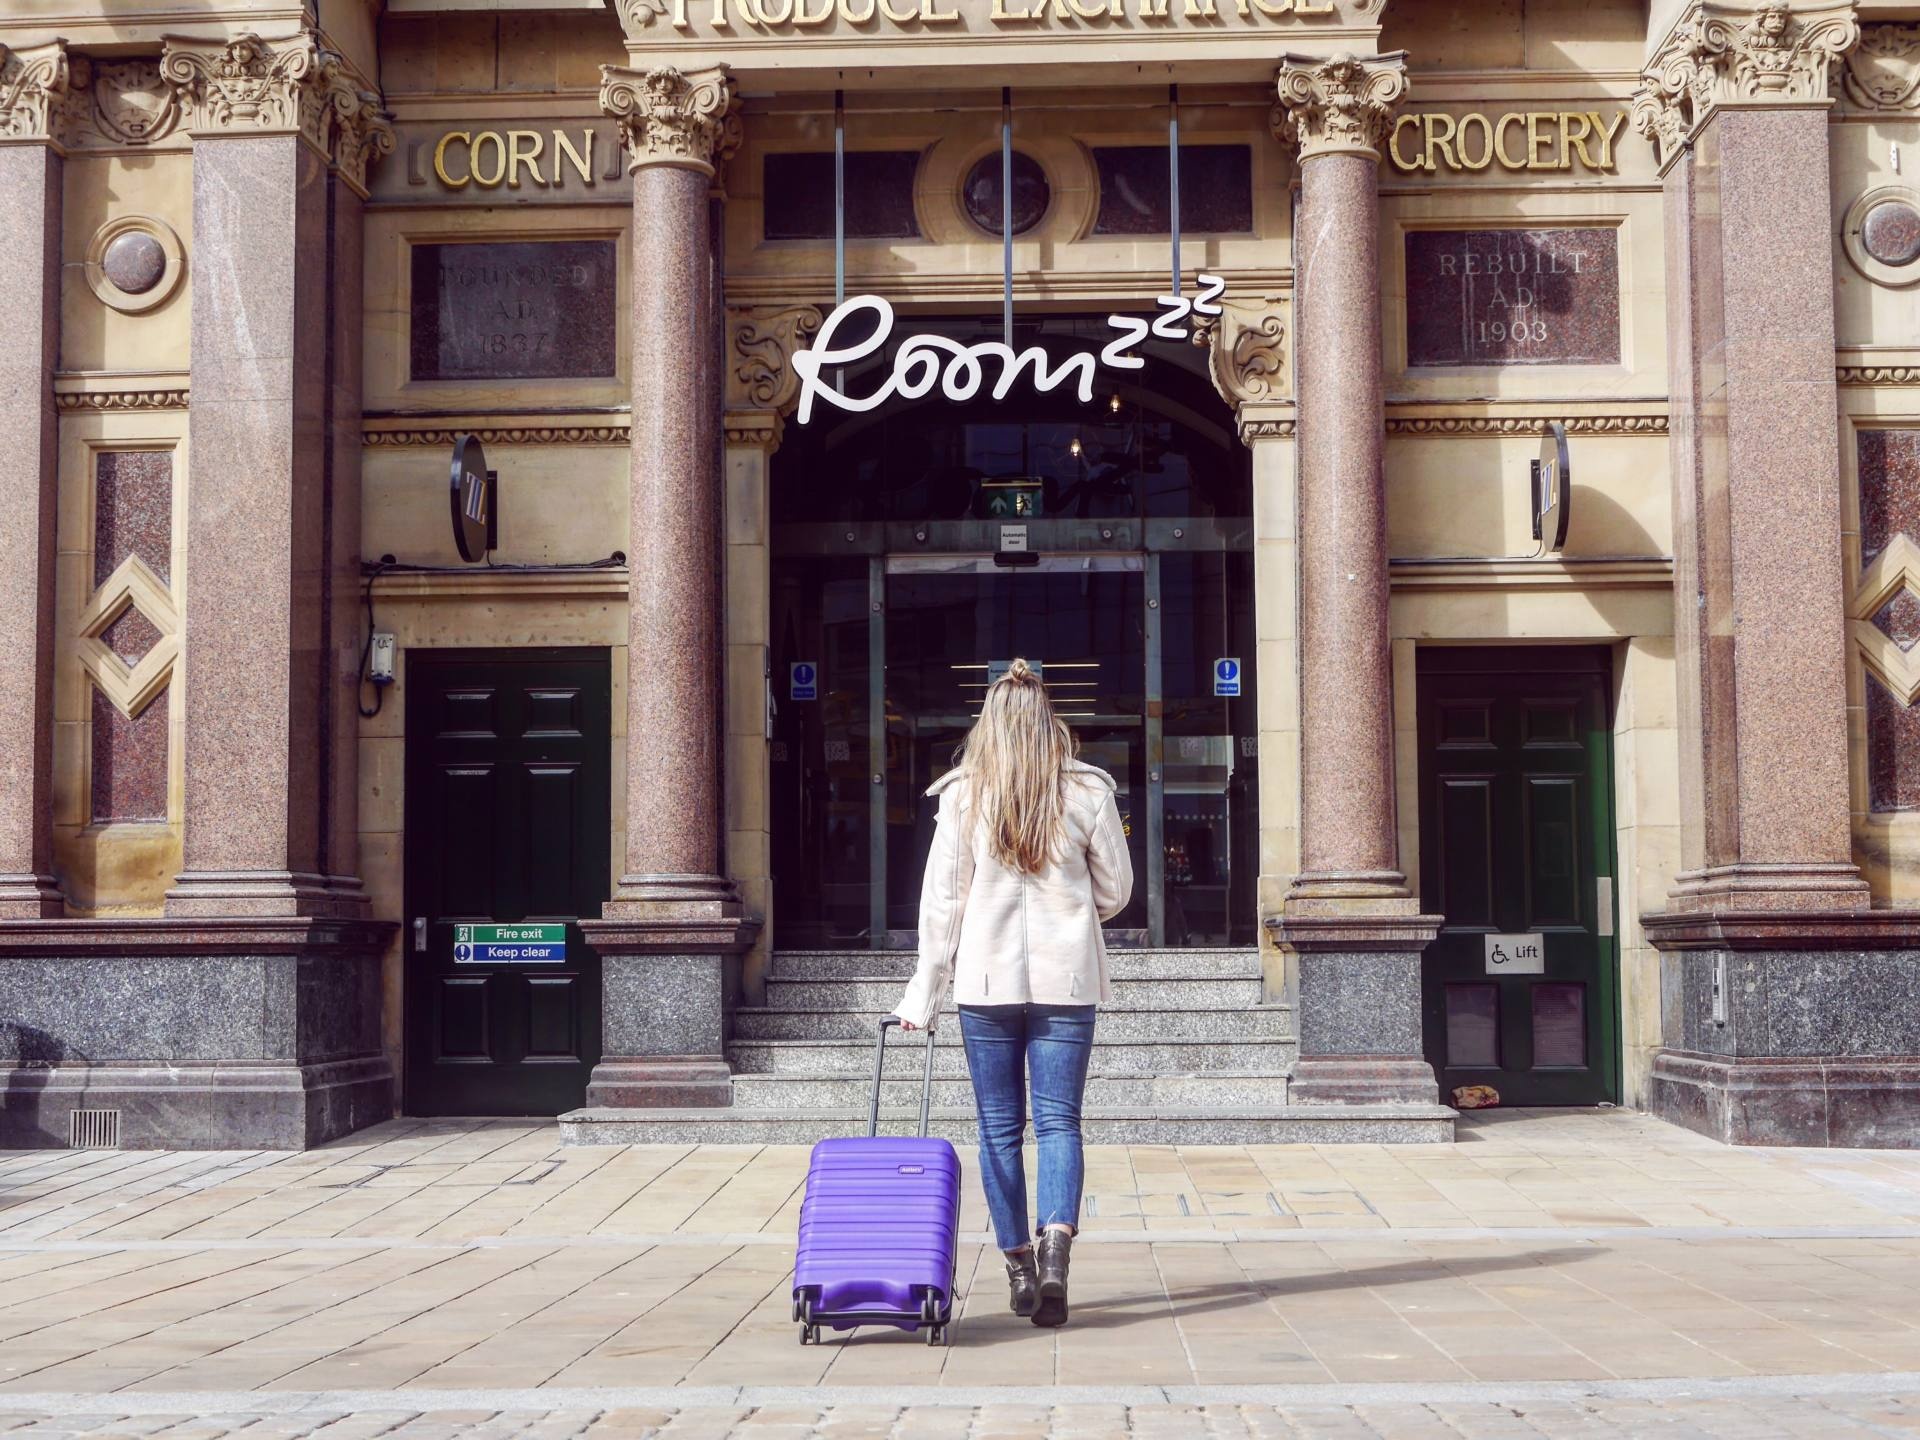 Roomzzz Manchester Corn Exchange Entrance